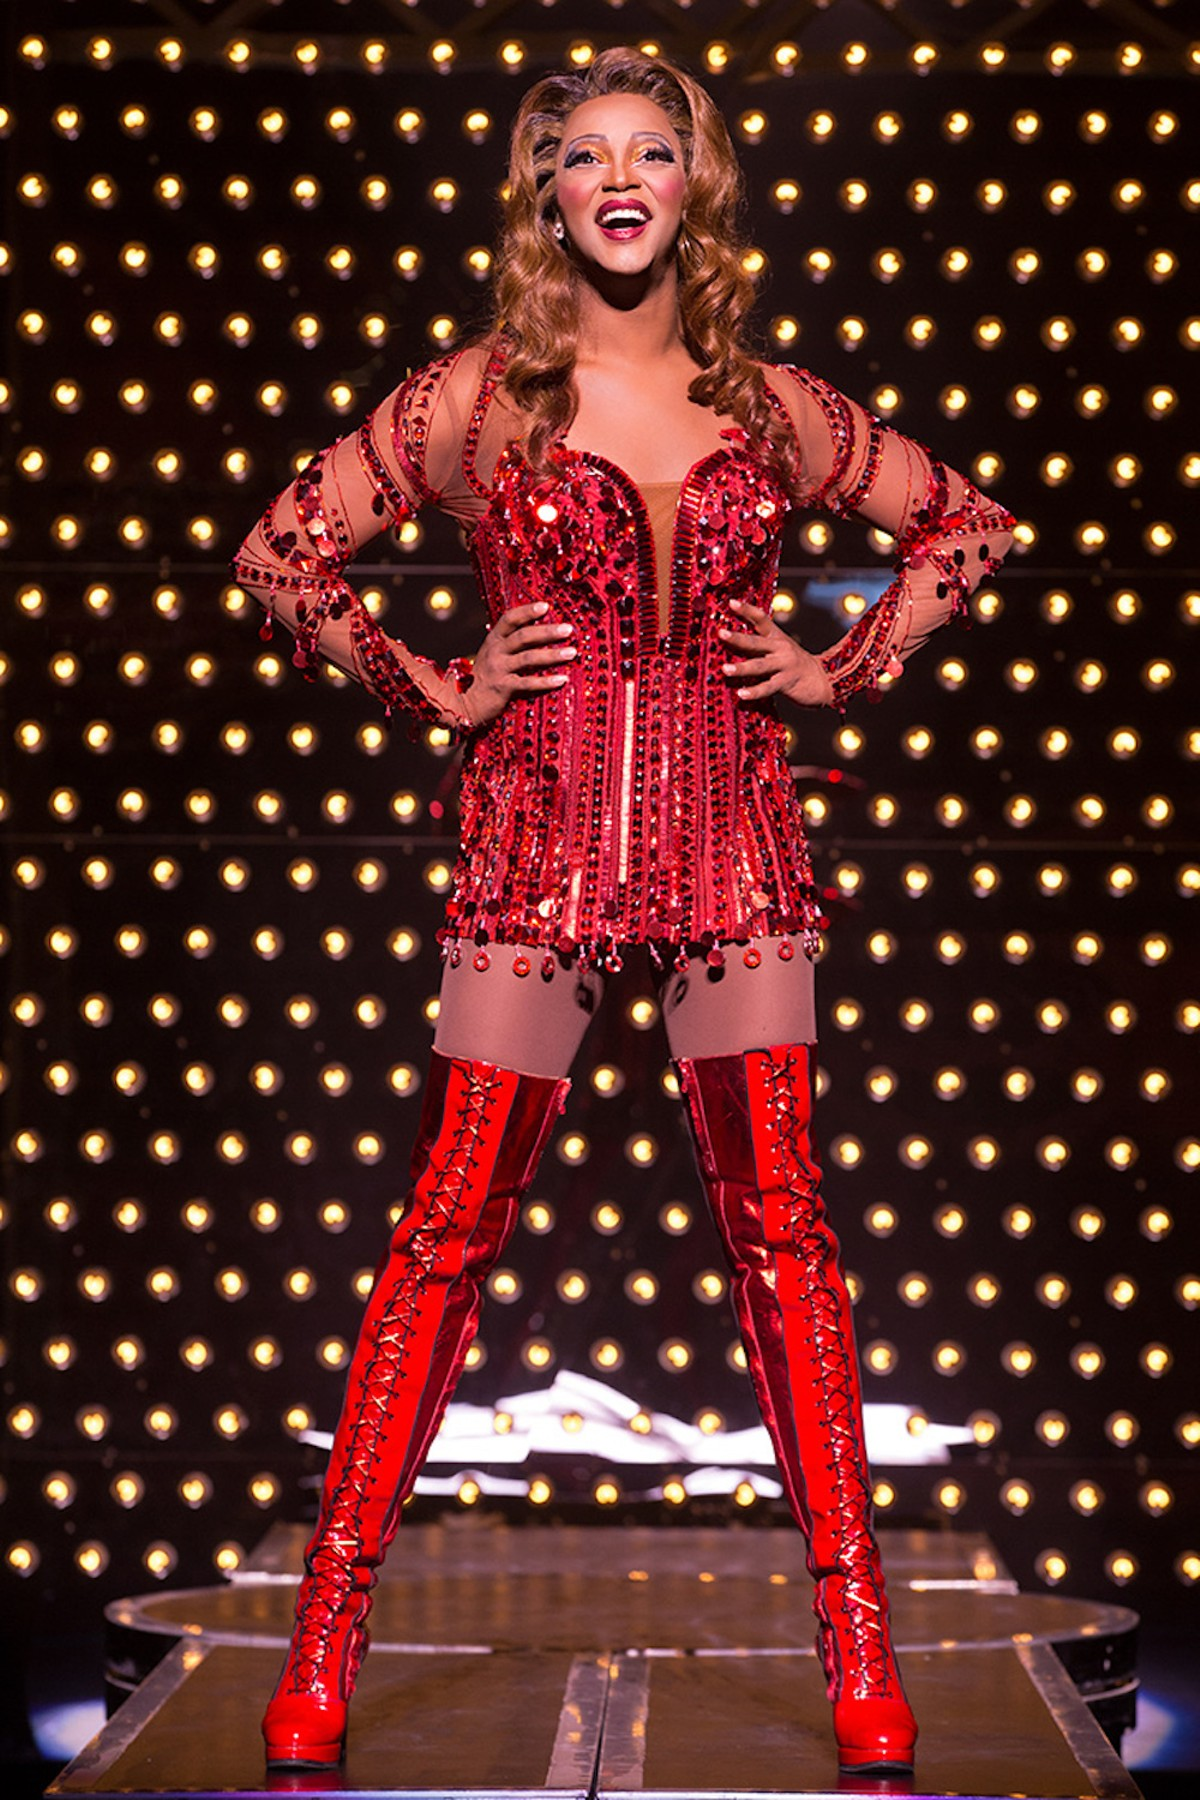 kinky_boots_tour_1_08_14_0373-edit.jpg--this-one.jpg